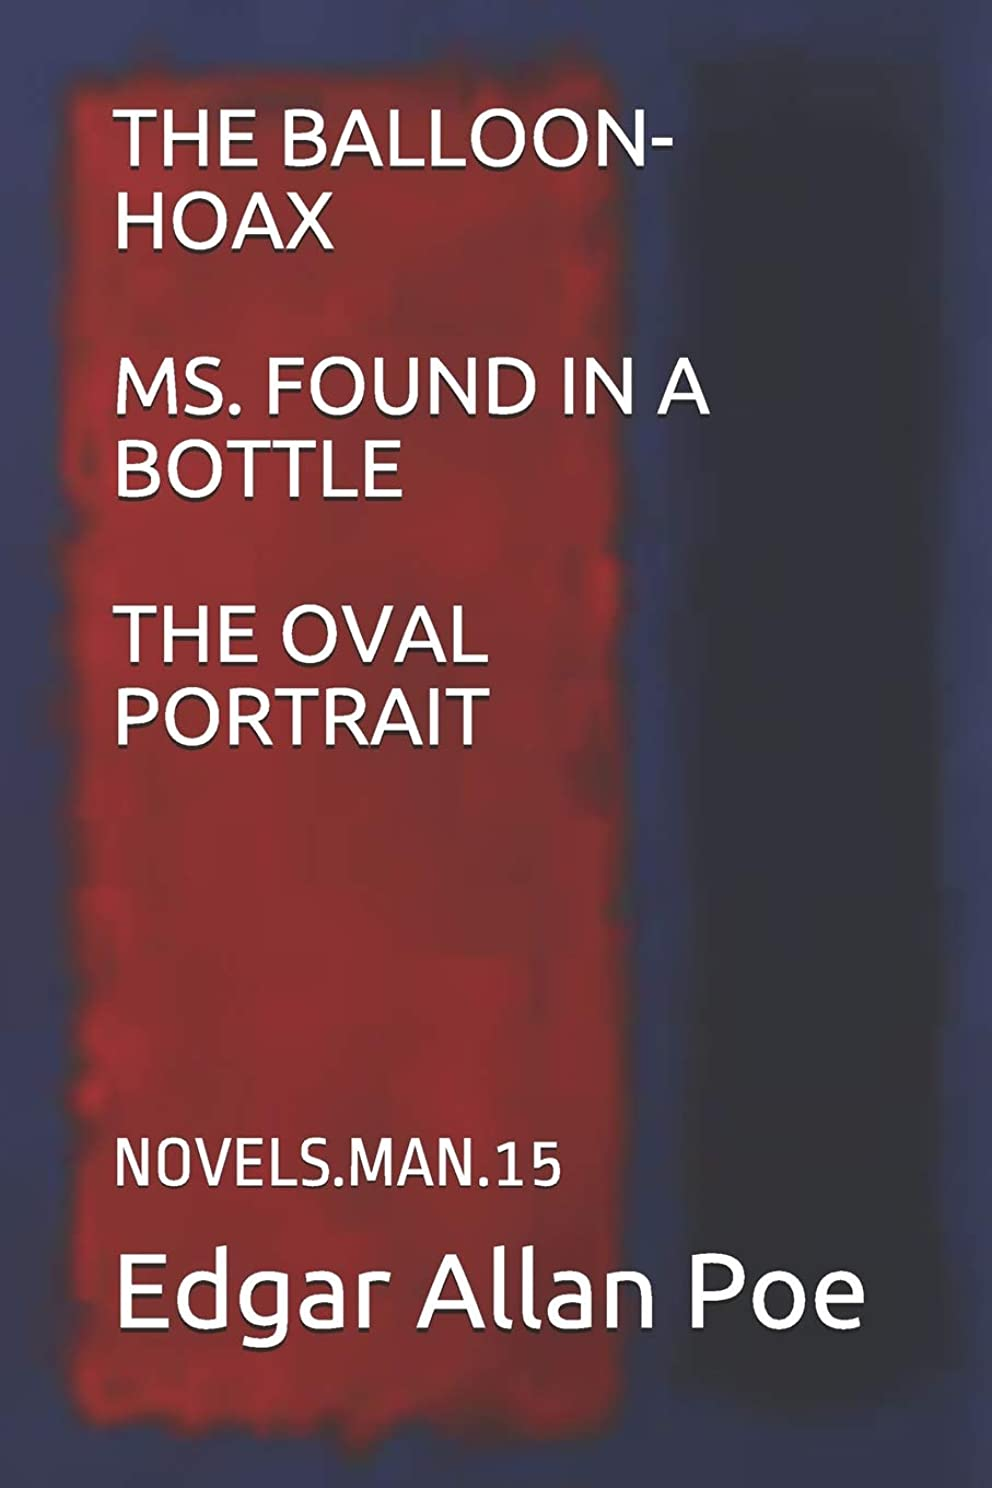 牛バッテリーに渡ってTHE BALLOON-HOAX/MS. FOUND IN A BOTTLE/THE OVAL PORTRAIT: NOVELS.MAN.15